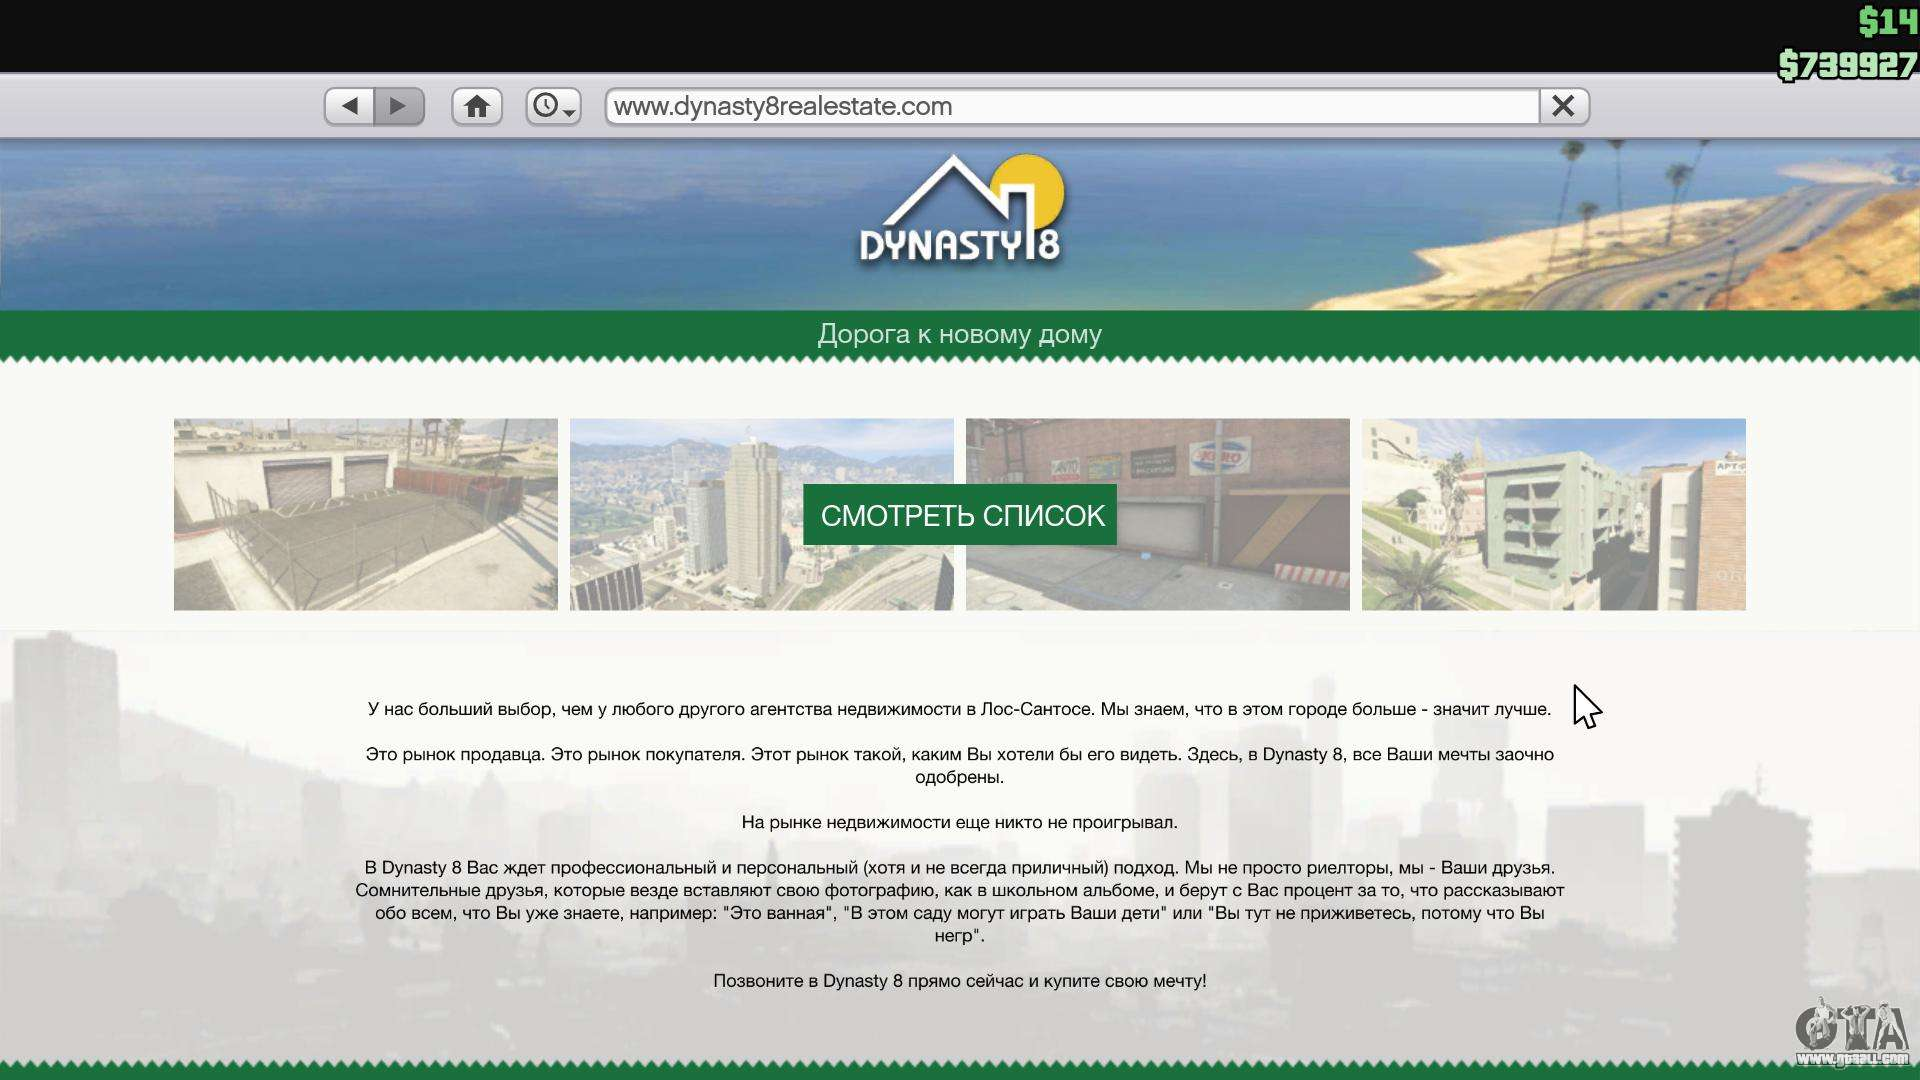 To Buy A House In Gta 5, Go To The Website